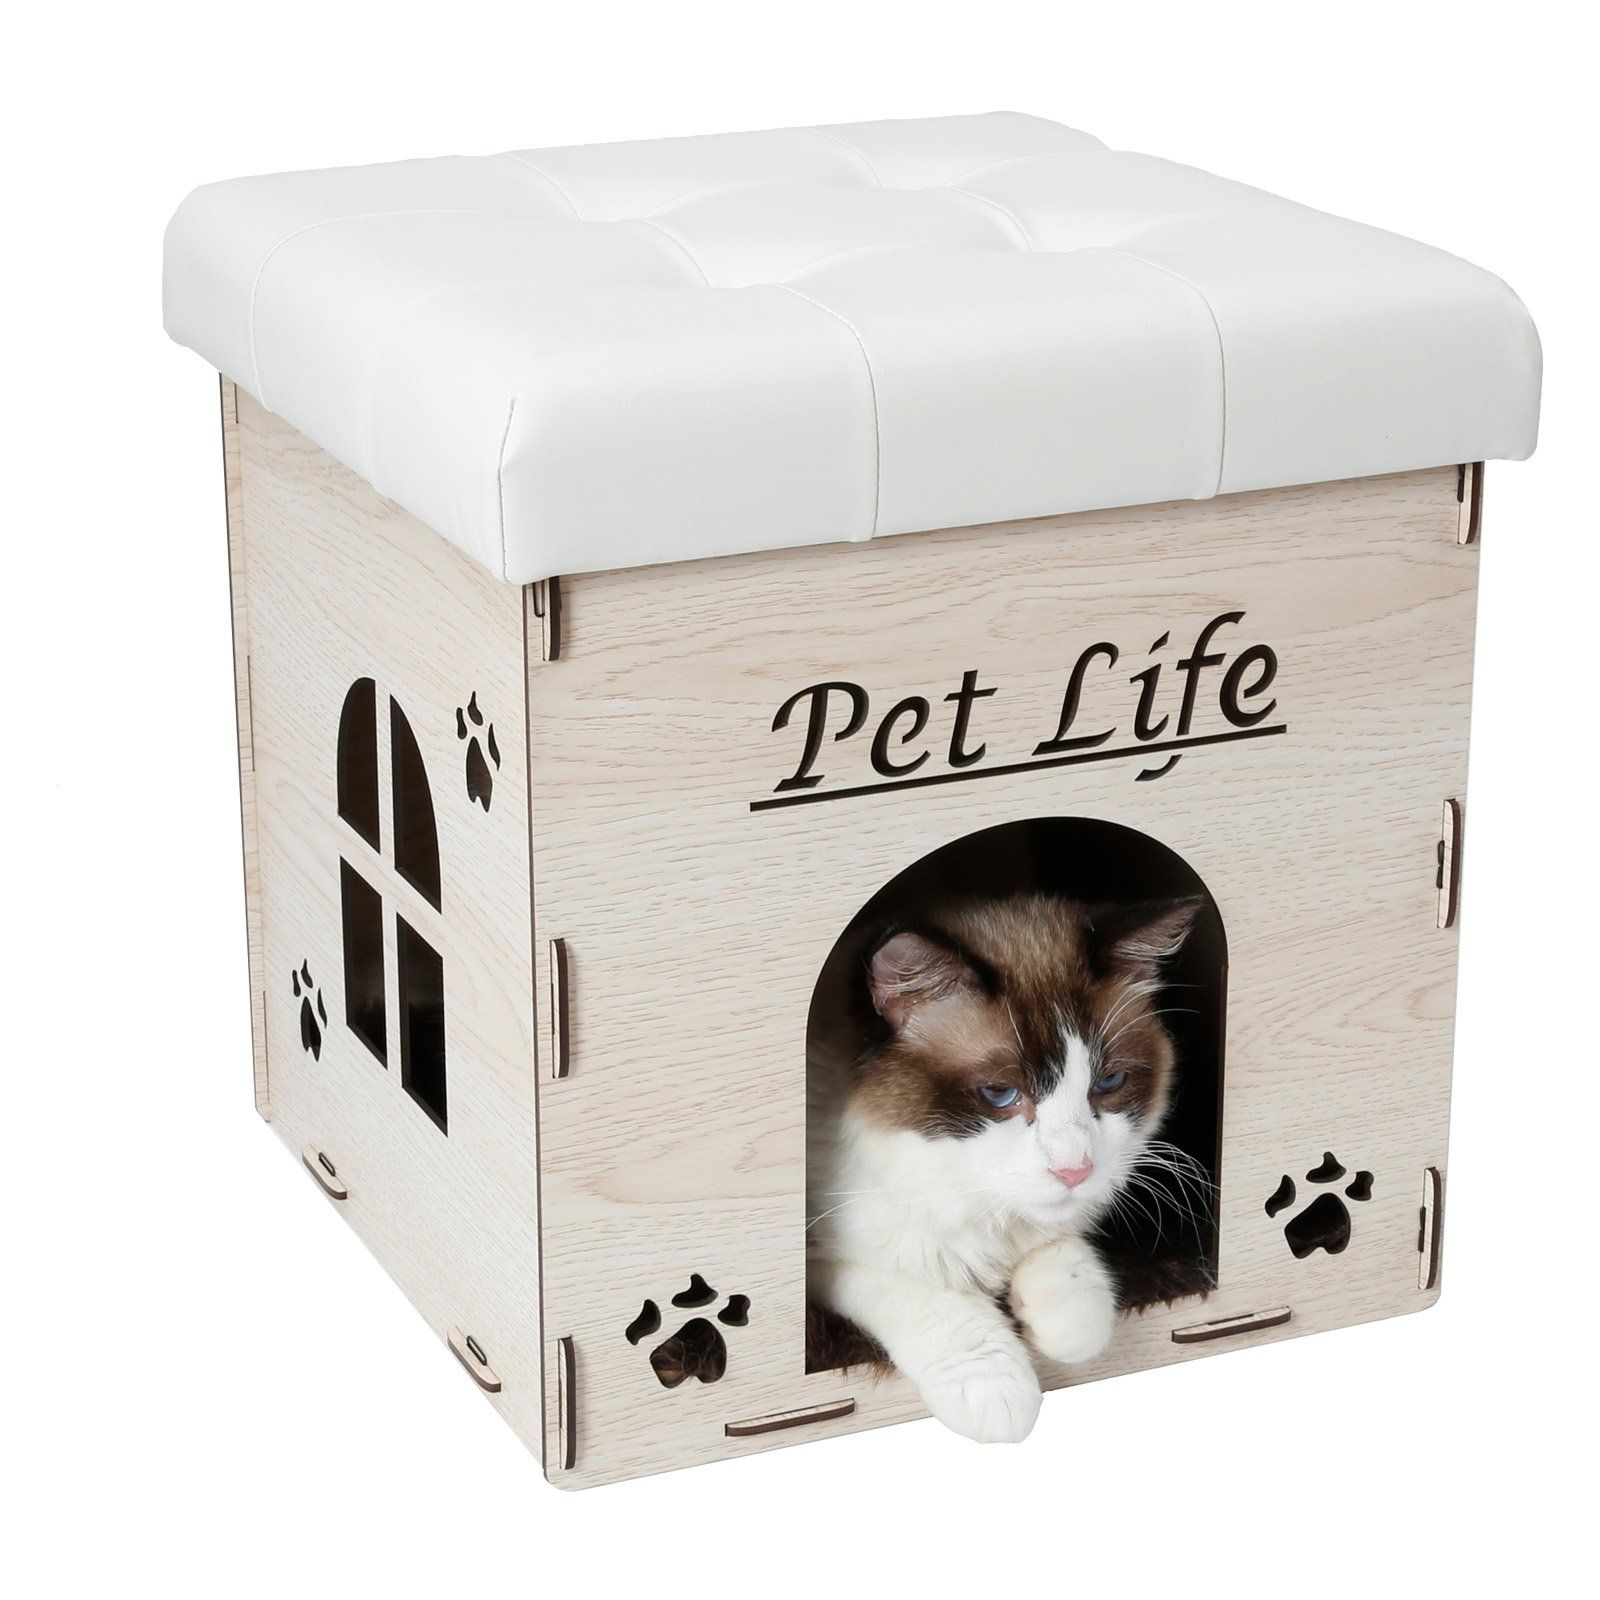 Pet Life Foldaway Collapsible Cat House Bench Outdoor Cat House Cat House Bench Furniture